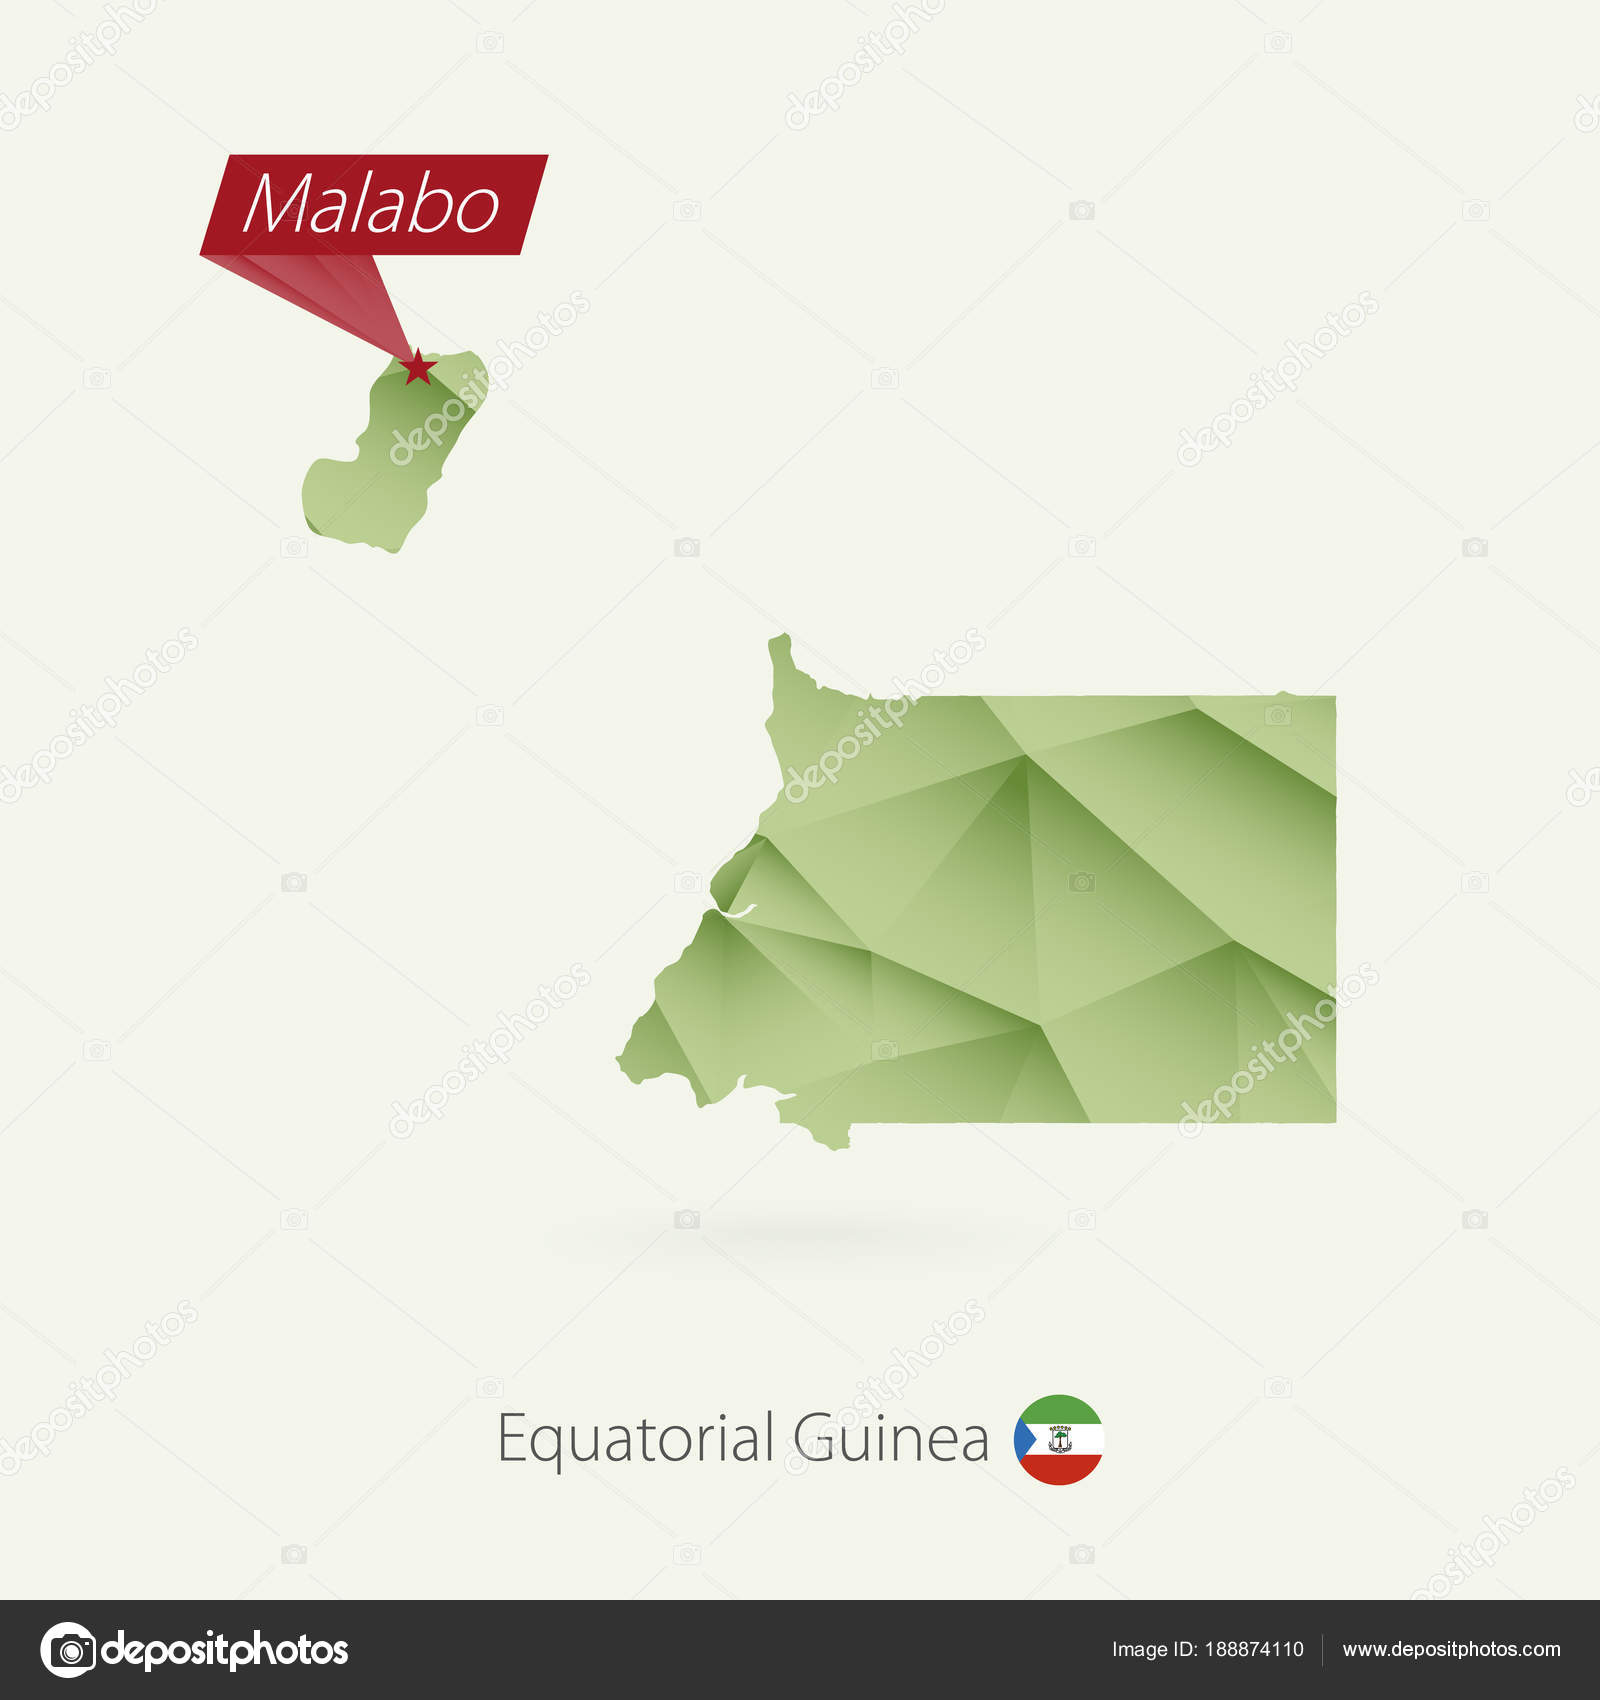 Green gradient low poly map of Equatorial Guinea with capital Malabo